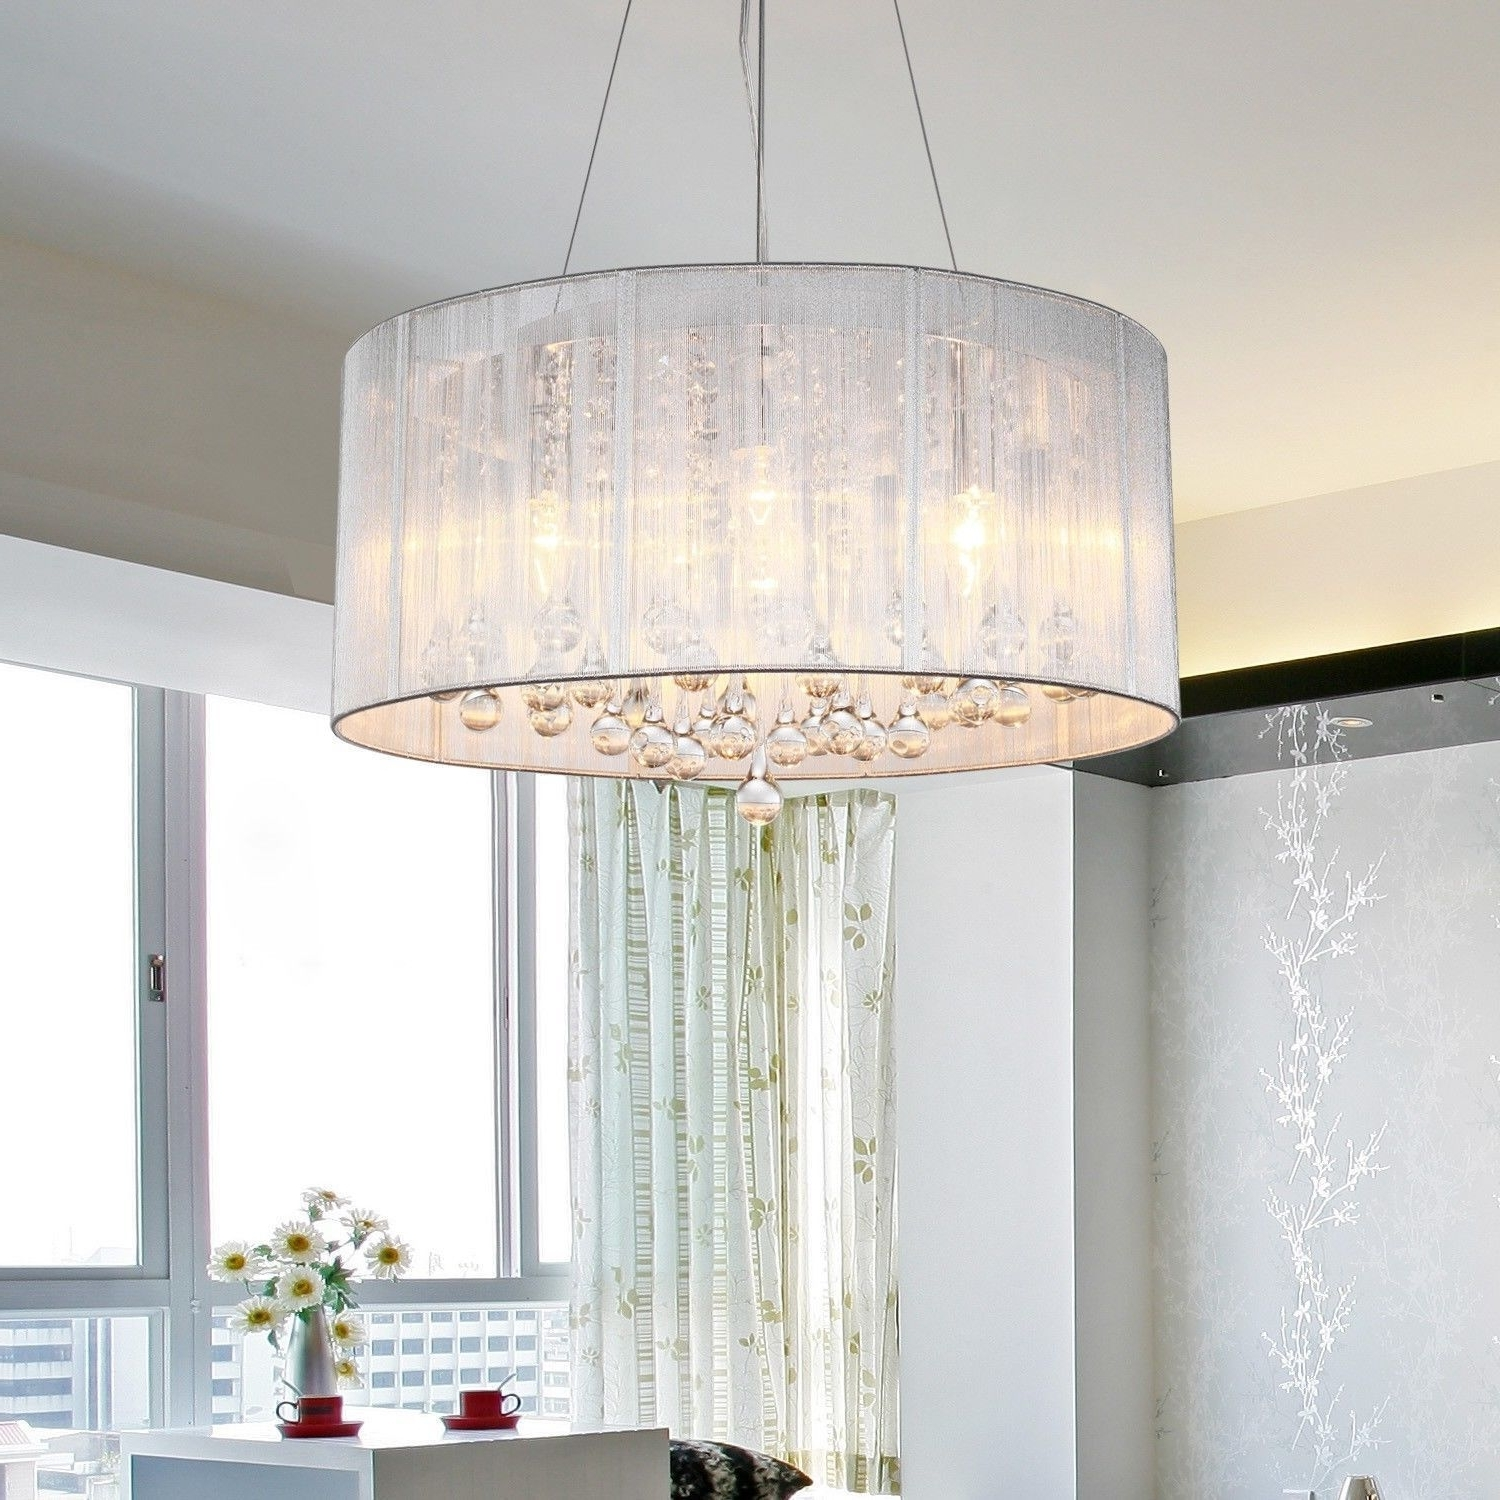 Widely Used Chandelier Lamp Shades In Awesome Lamp Shades For Chandeliers Chandelier From The Elegant (View 4 of 20)